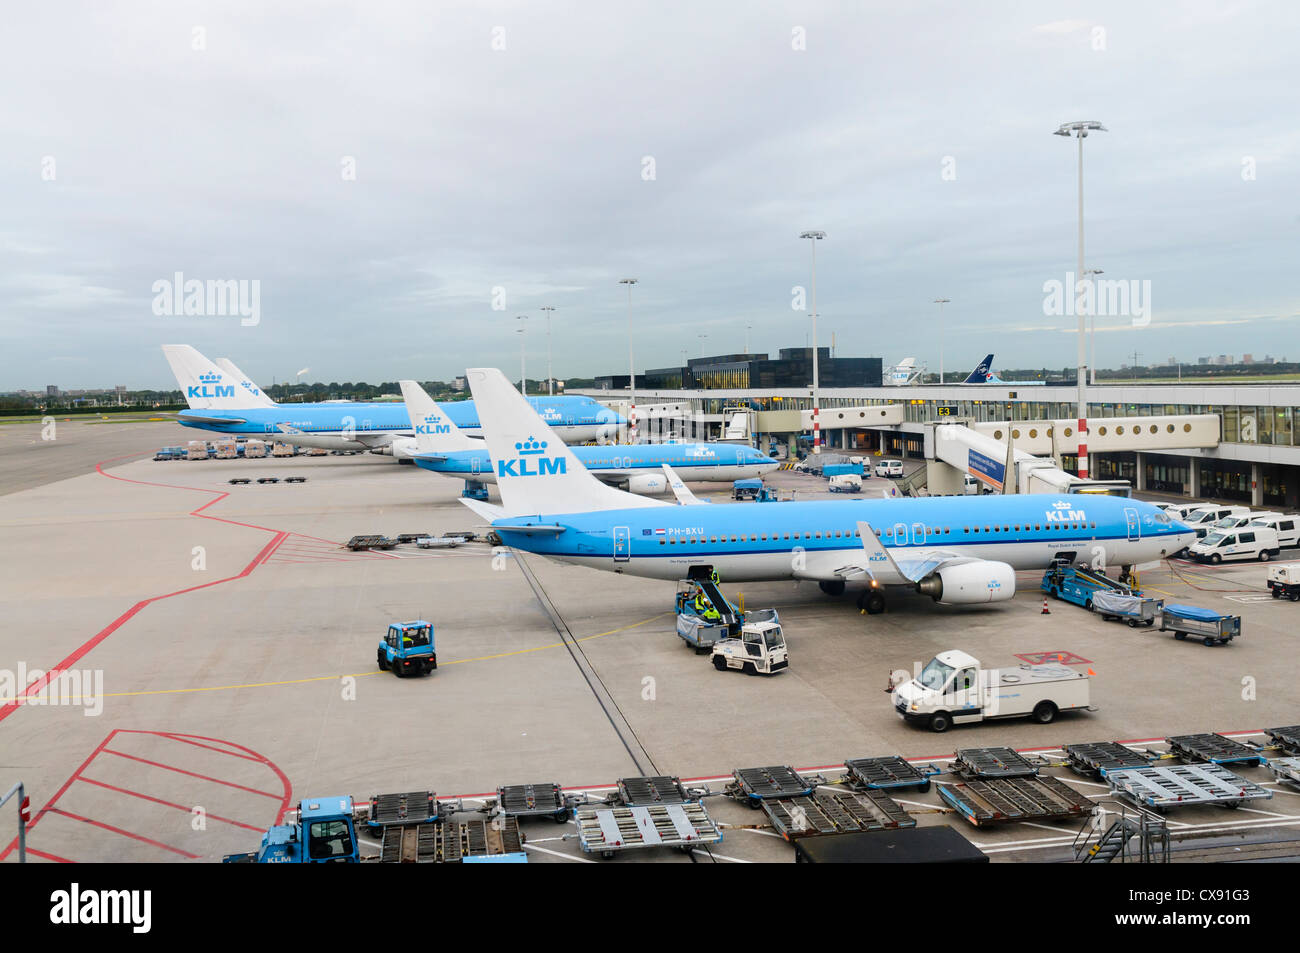 Air France KLM planes on the apron of Amsterdam Schiphol Airport with service vehicles - Stock Image